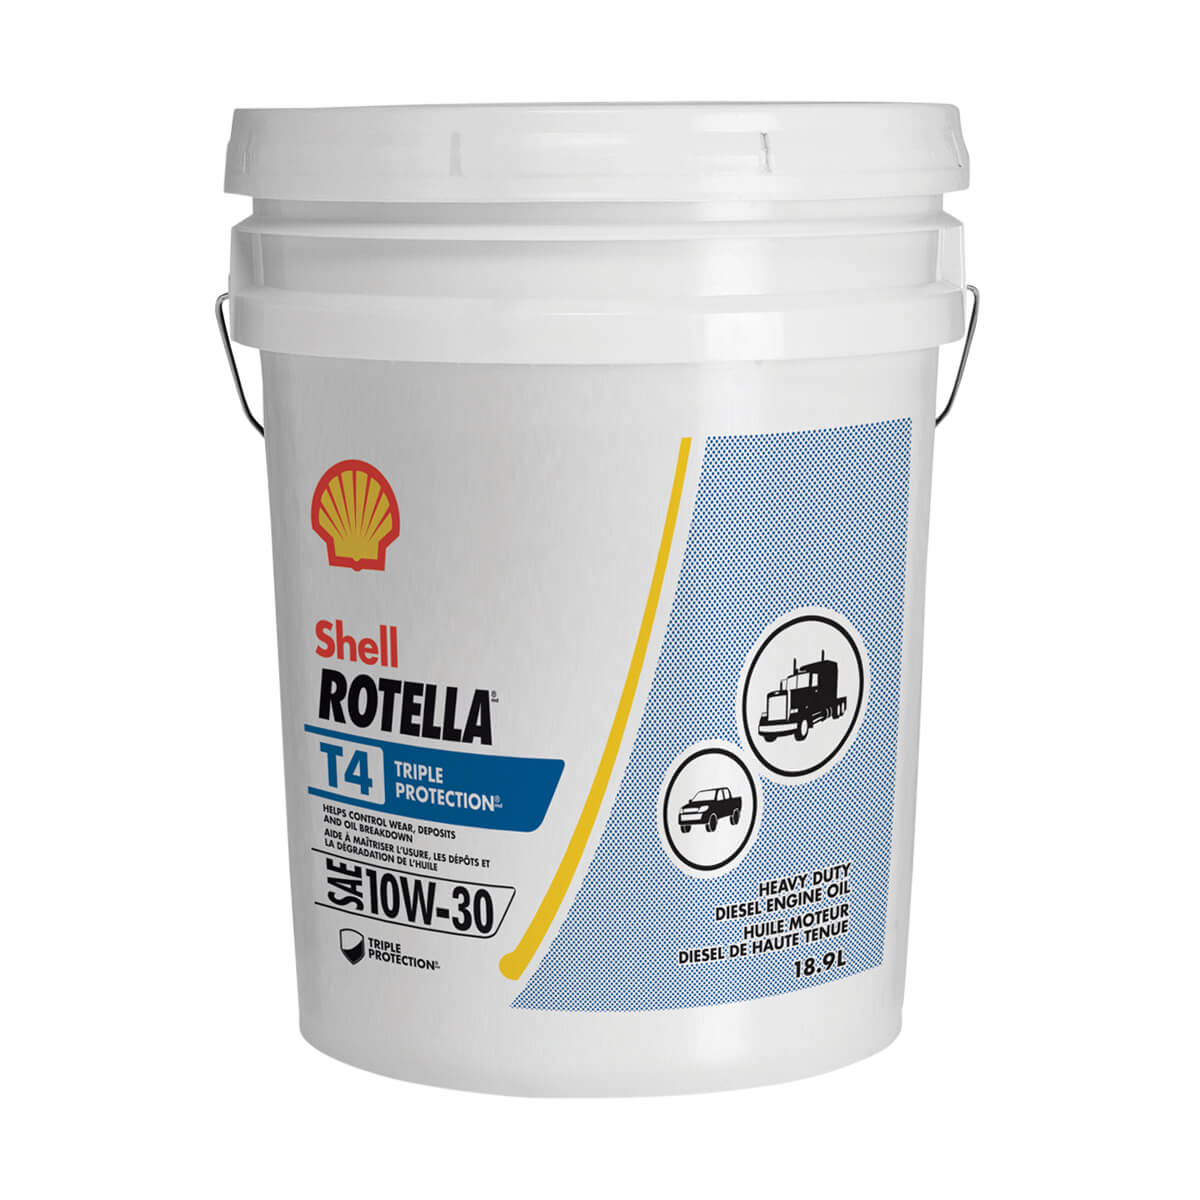 Shell Rotella T4 Triple Protection 10W-30 - 18.9L